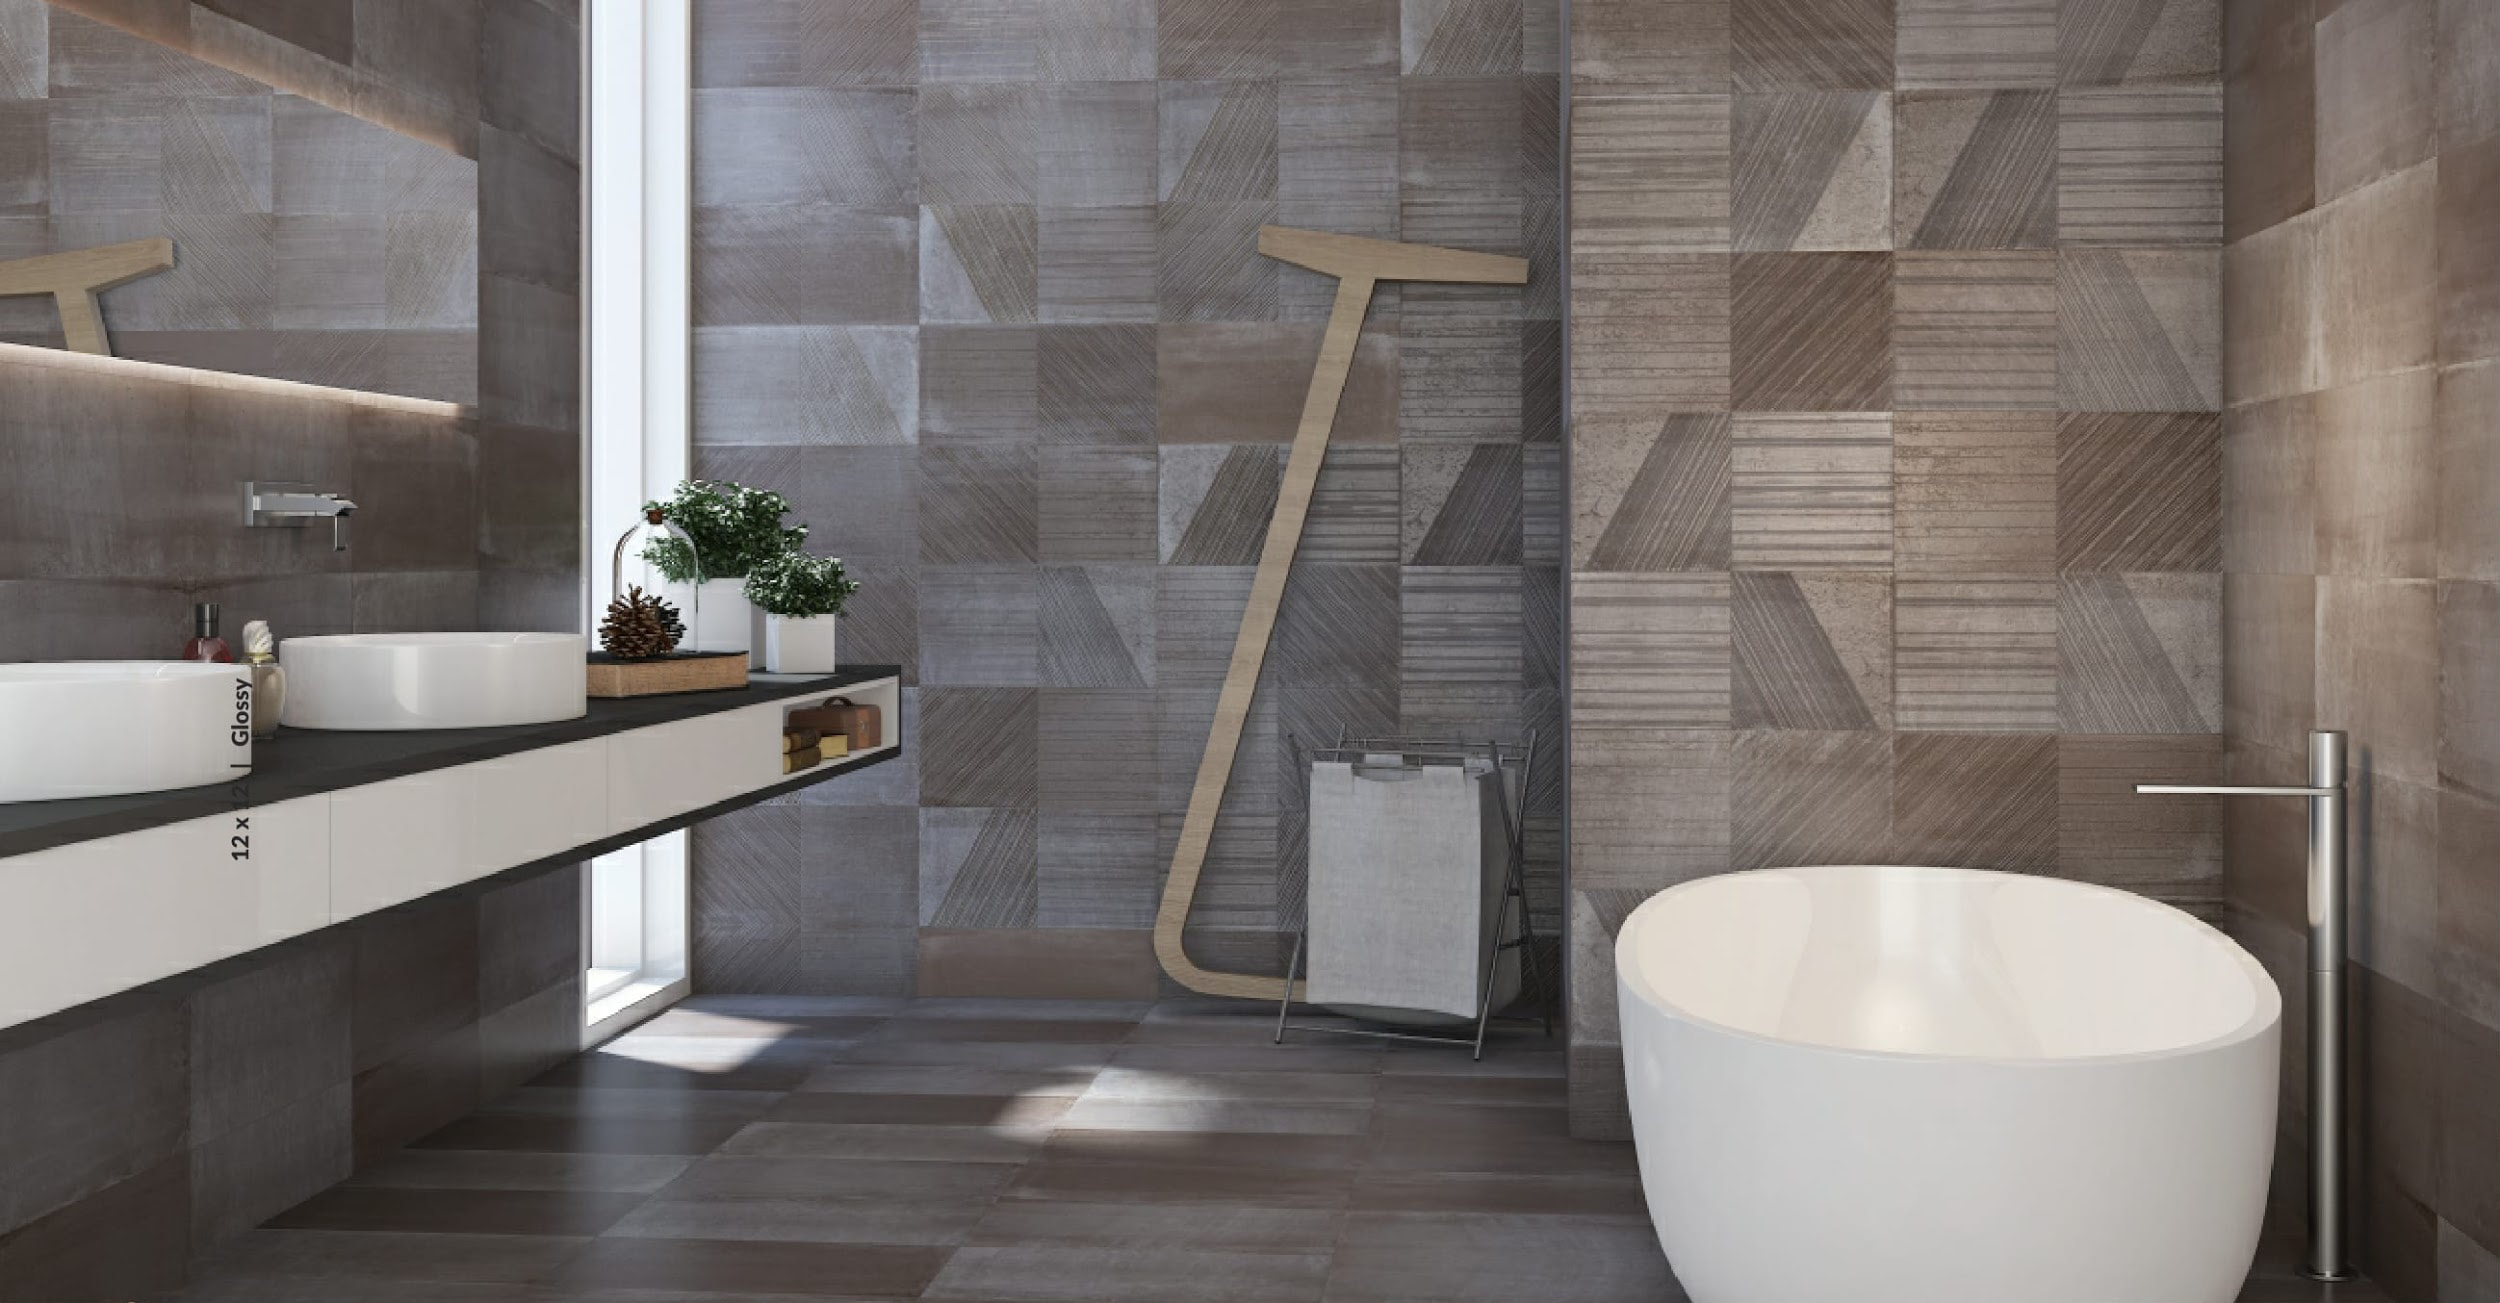 Best Kitchen Gallery: Surefire Design Ideas To Enrich Your Tiles For Your Small Bathroom of Small Bathroom Tile Design Ideas  on rachelxblog.com